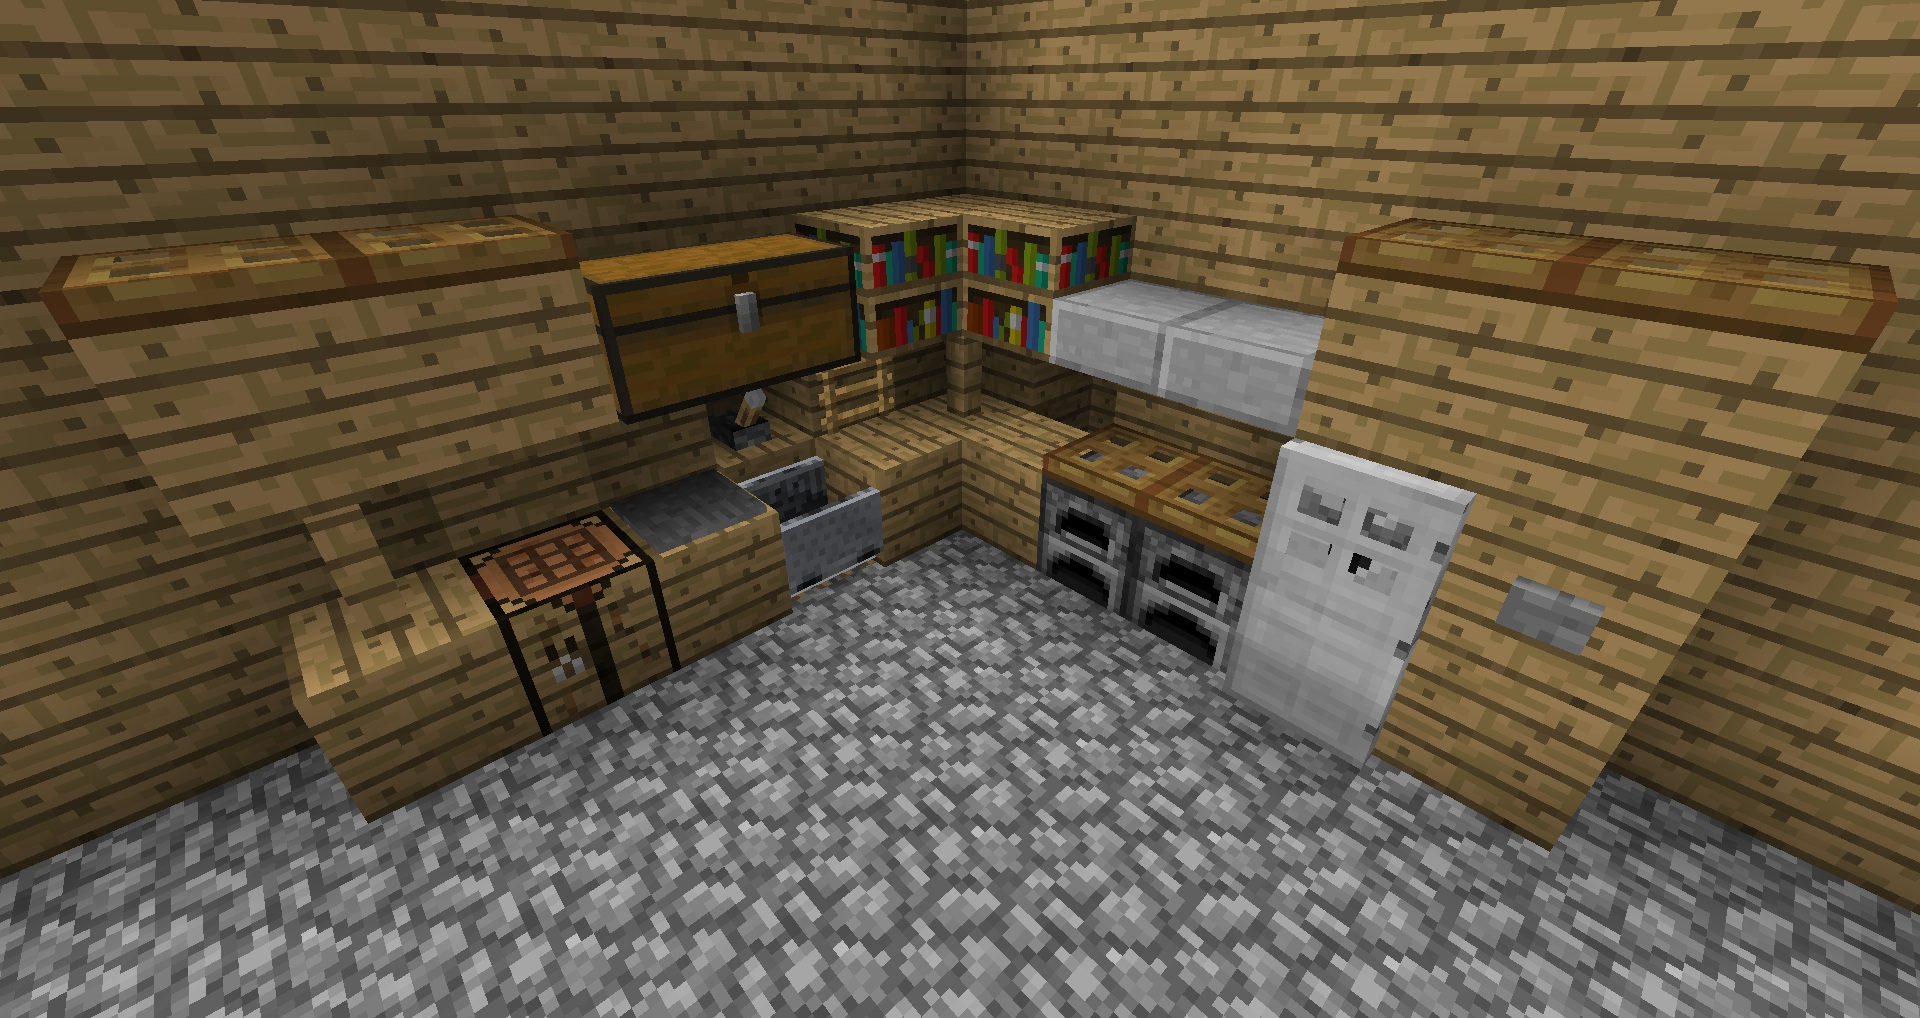 Kitchen Ideas Minecraft Pe minecraft kitchen designs & ideas youtube with kitchen design